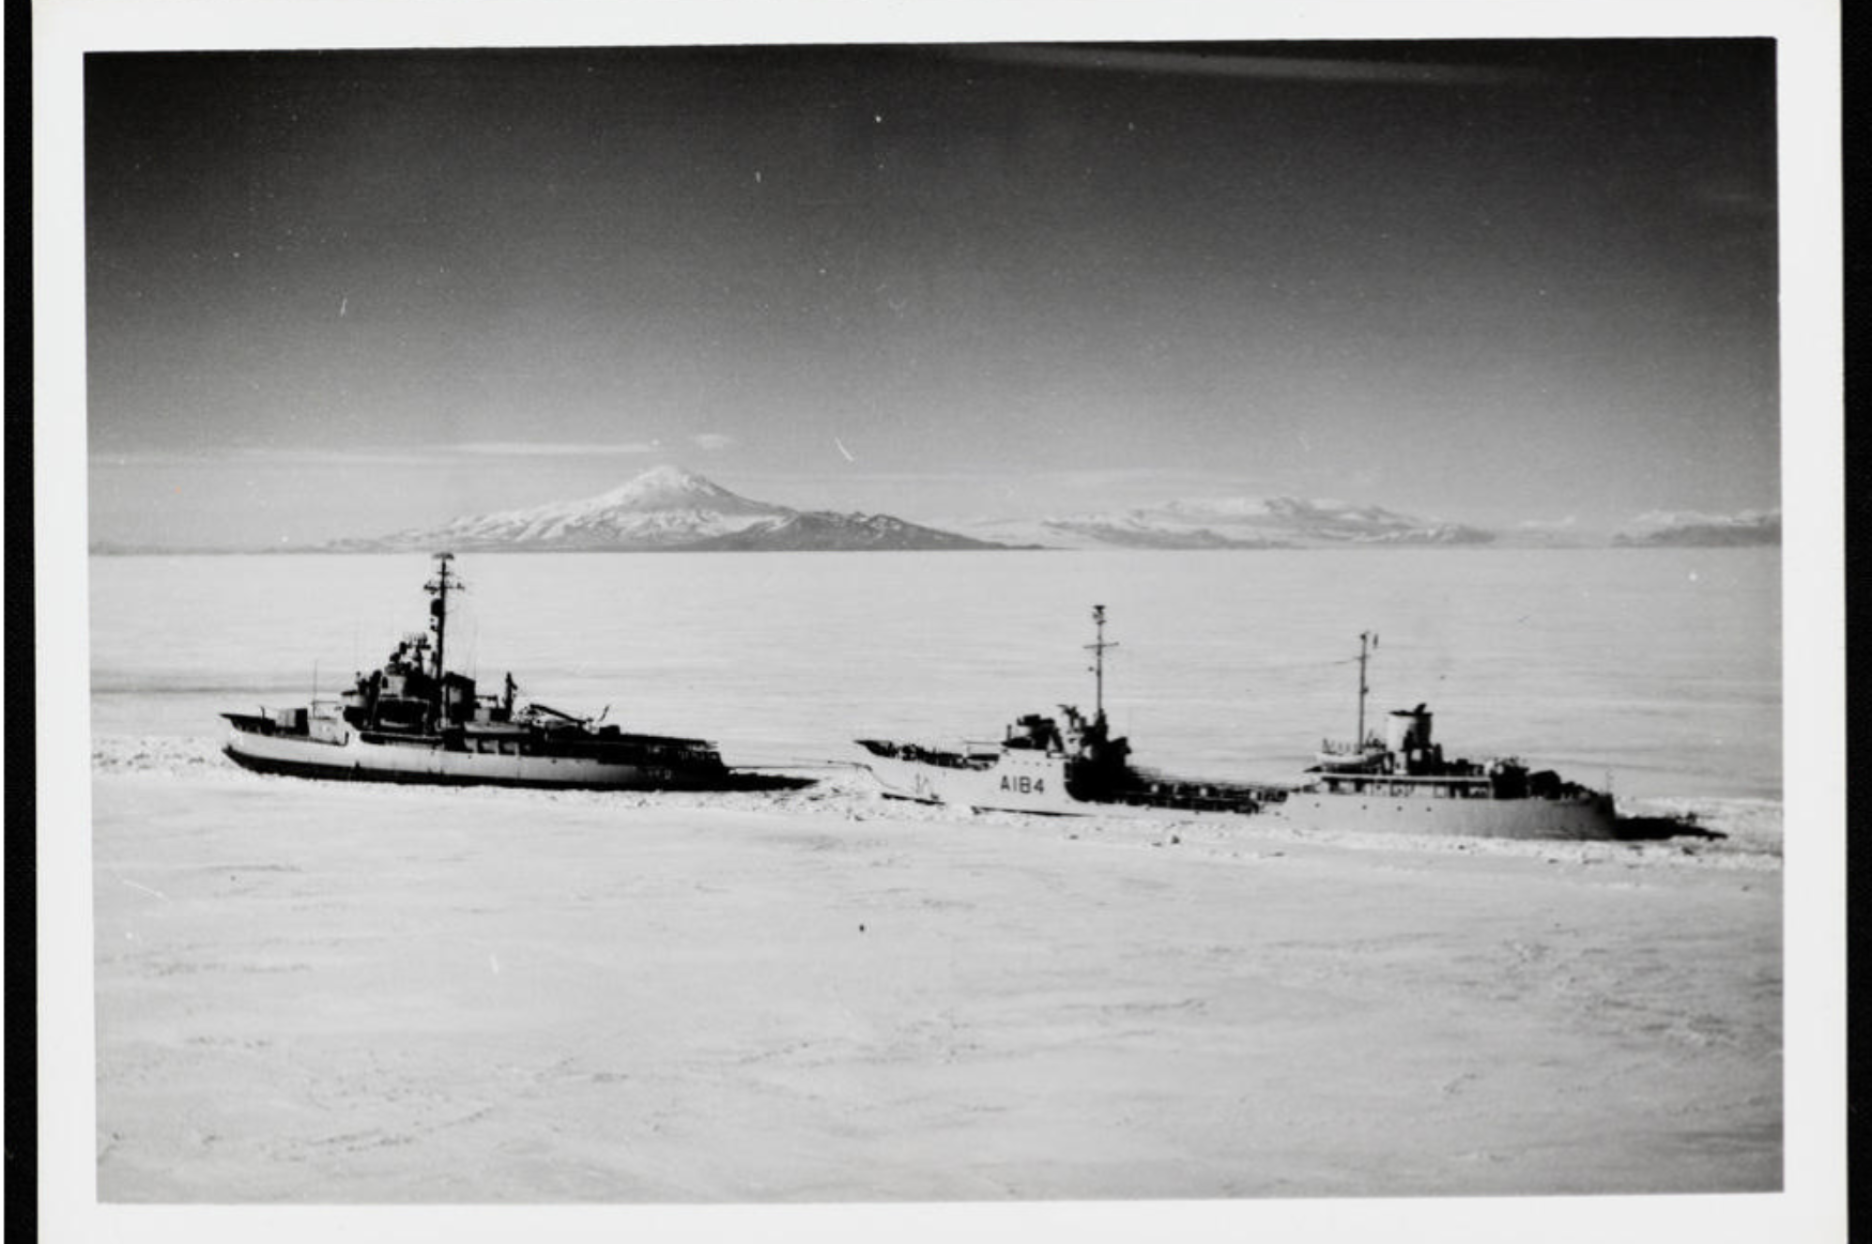 11829 1 The US Icebreaker 'Edisto' followed by H.M.N.Z.S. 'Endeavour II' in McMurdo Sound, Antarctica